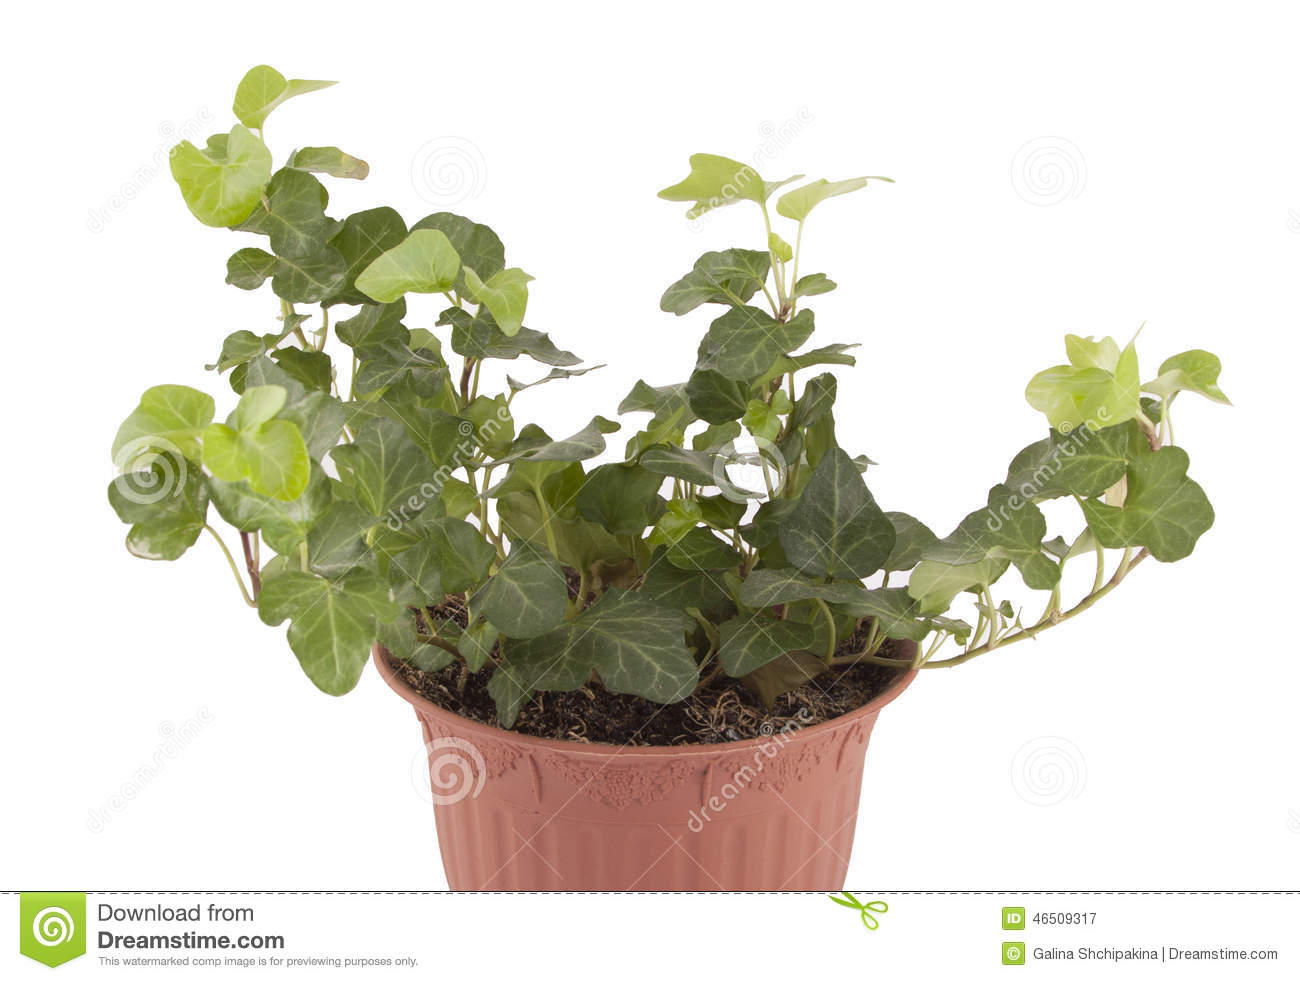 Lierre de plante d 39 int rieur photo stock image 46509317 for Plante interieur photo